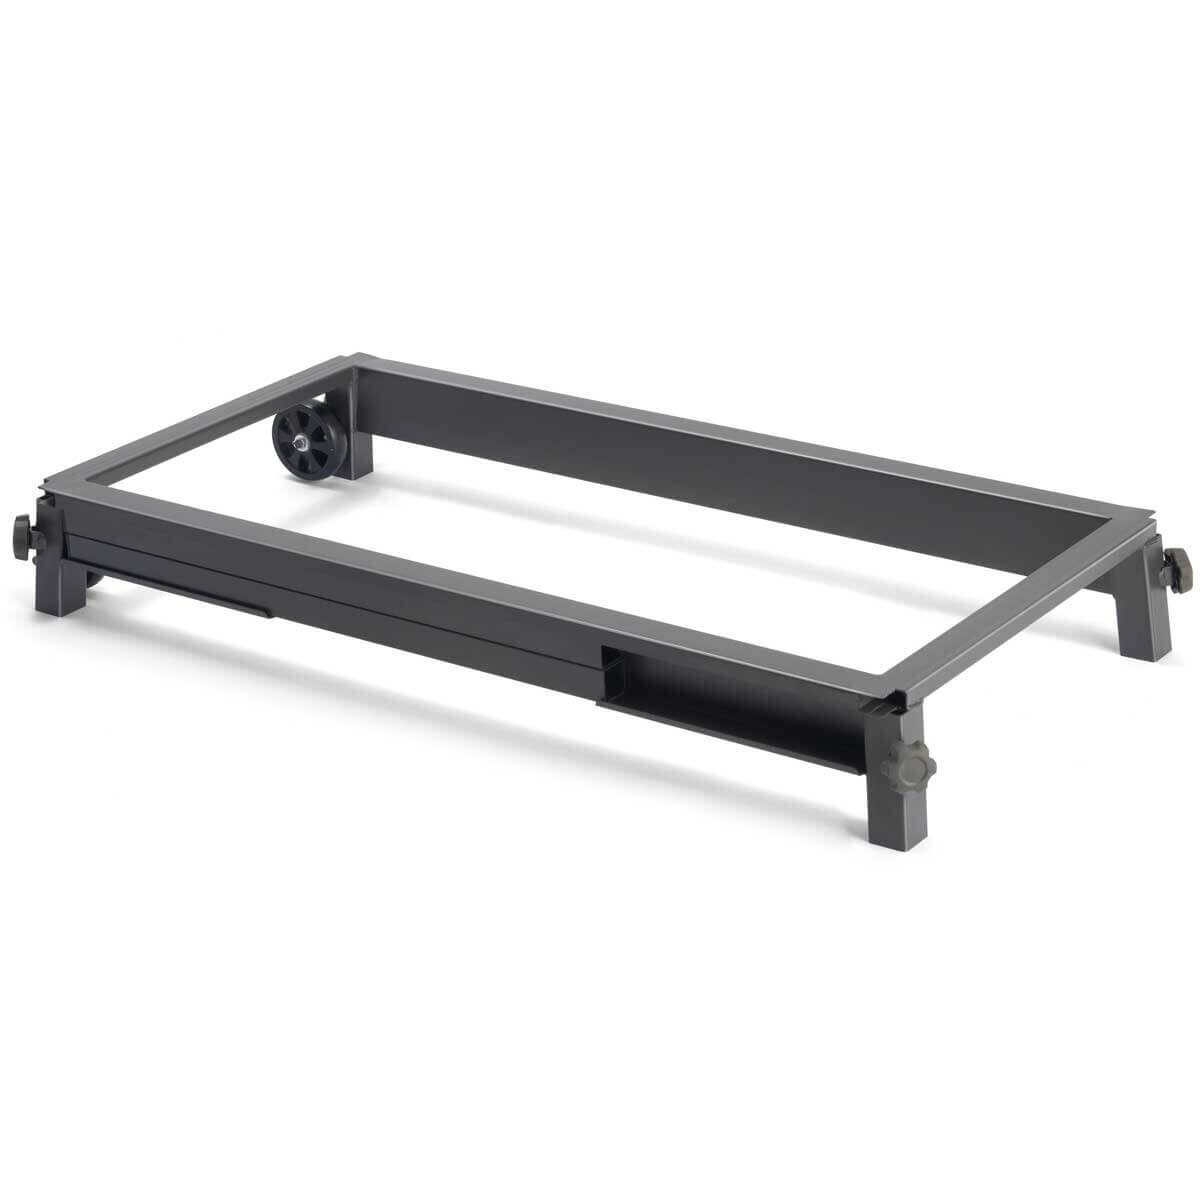 Husqvarna MS 360 Collapsible Stand